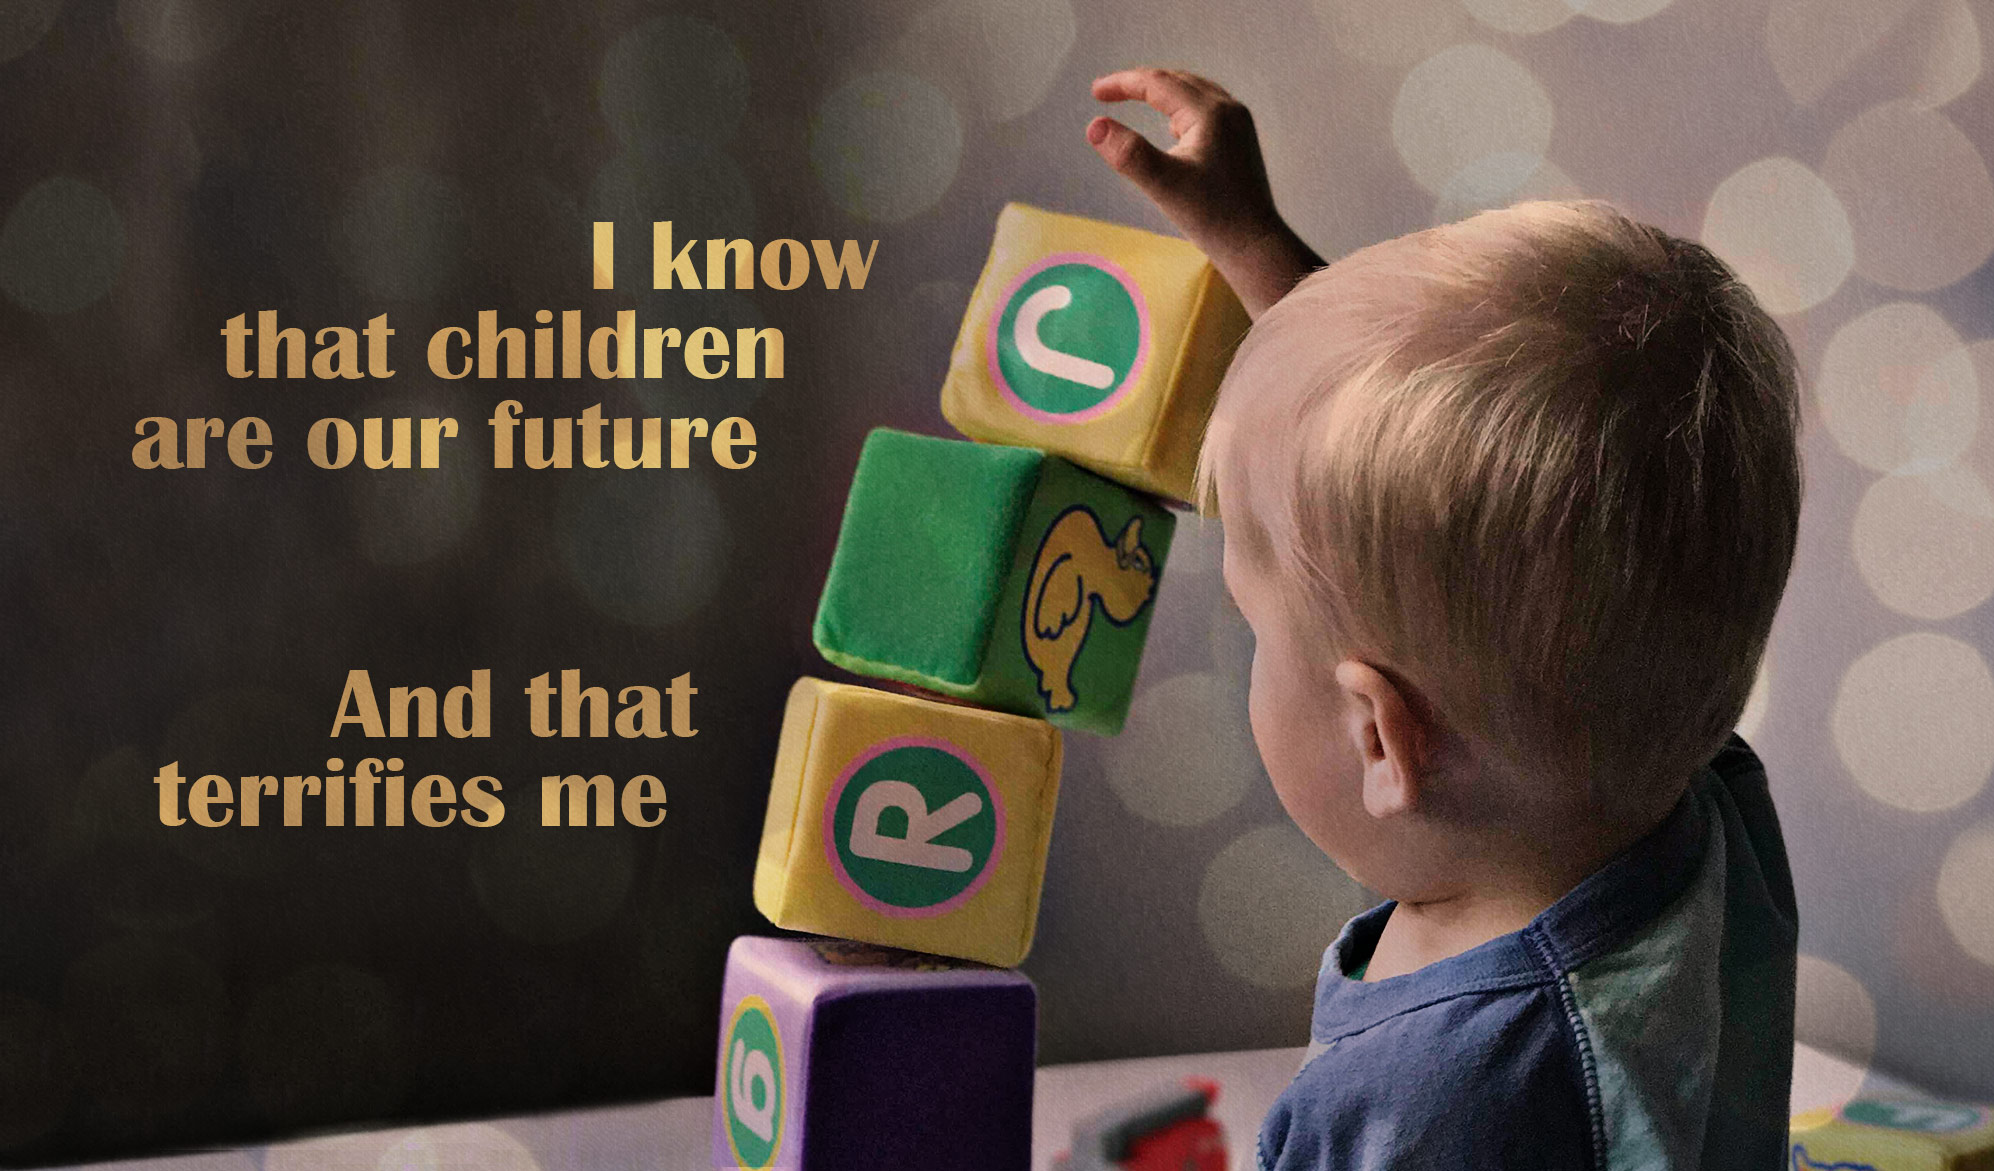 daily inspirational quote image: a young child with a collapsing tower of soft blocks